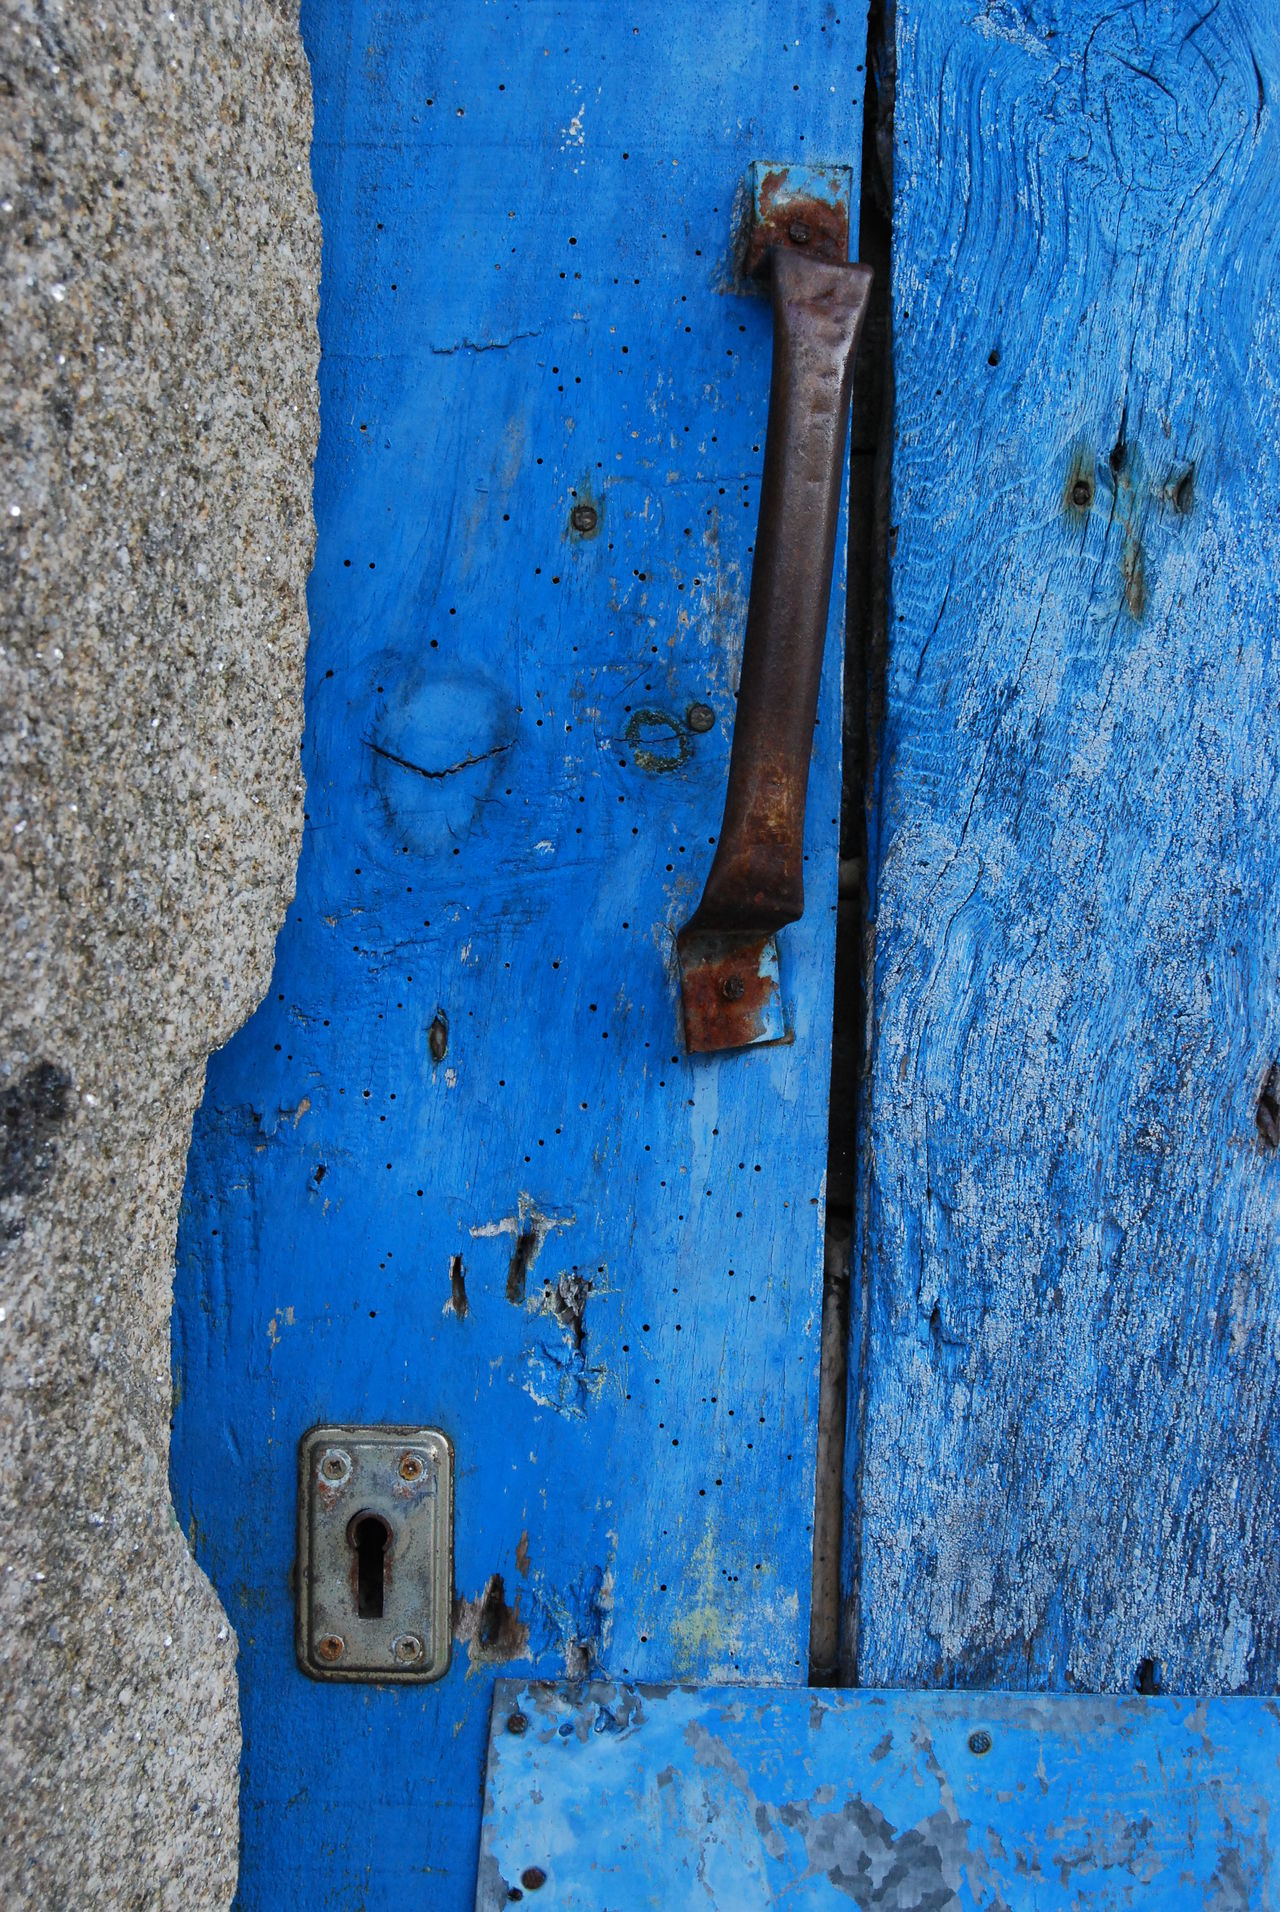 Old blue door Blue Blue Wave Closed Handle Lock Old Old_door Wood - Material